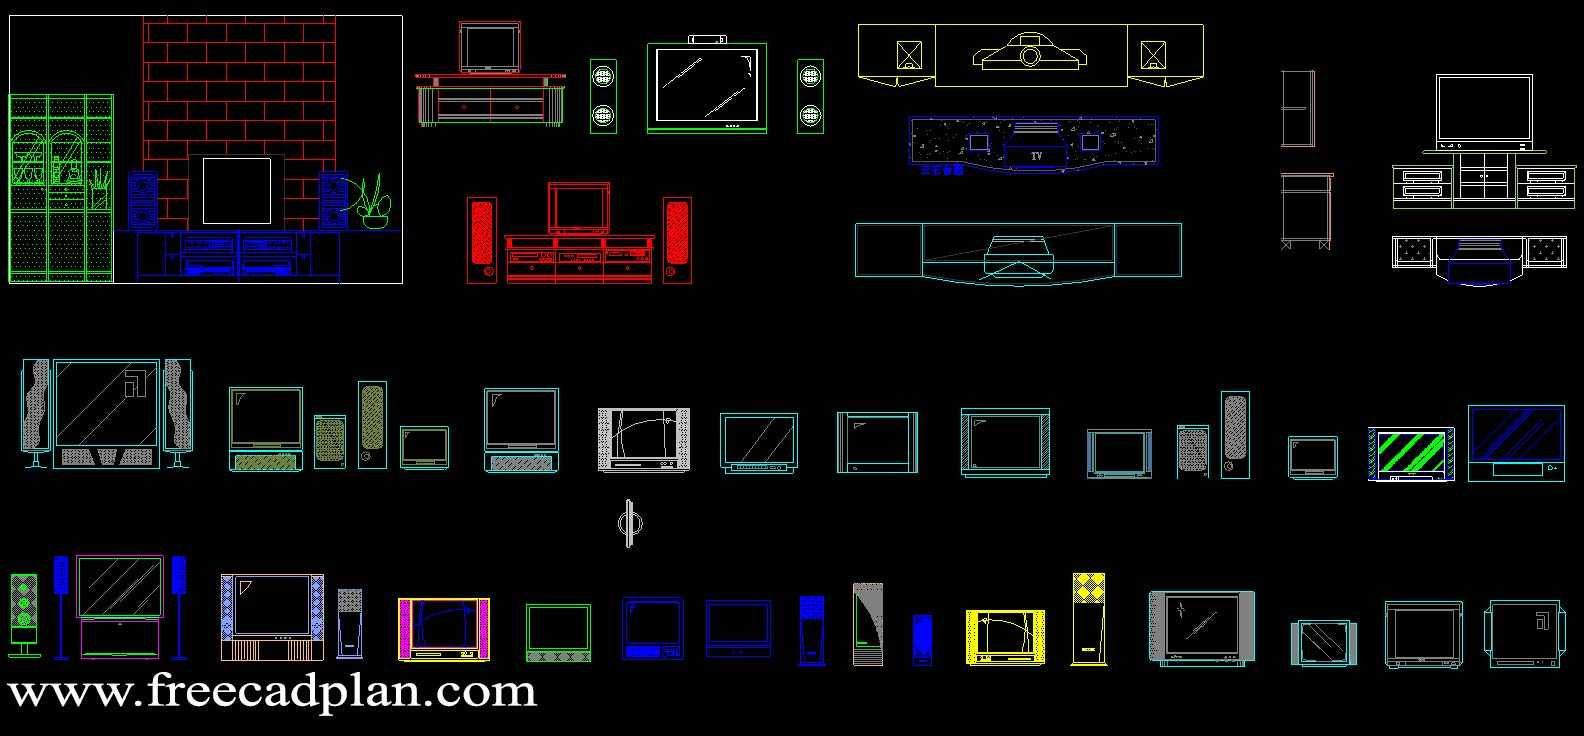 2d Tv Dwg Cad Block Download Free Cad Plan